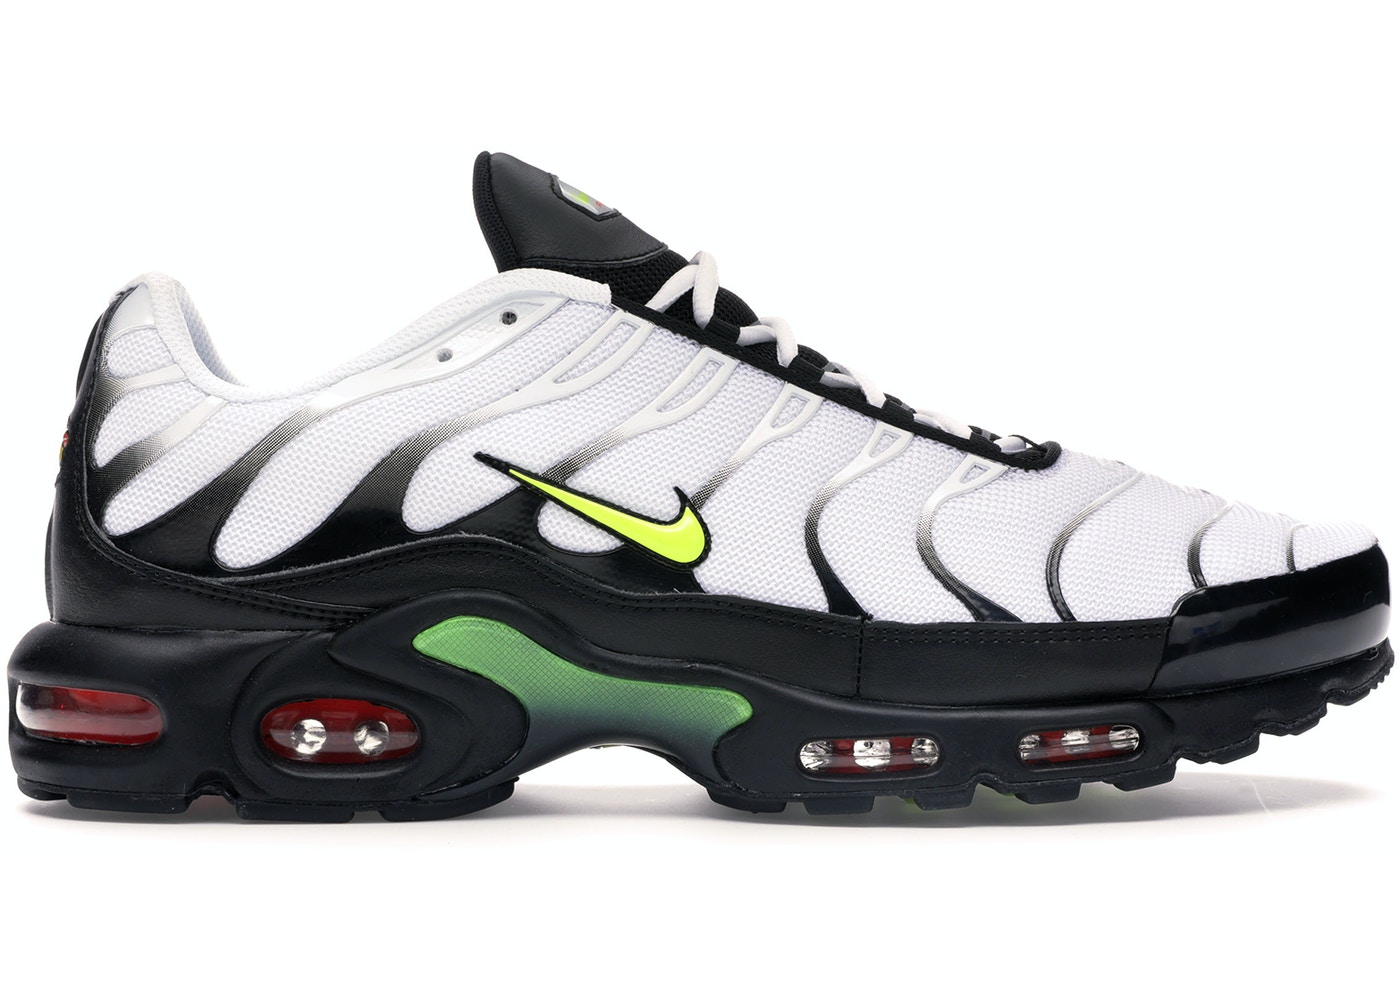 sports shoes 45bca 8f8c5 Buy Nike Air Max Plus Shoes & Deadstock Sneakers